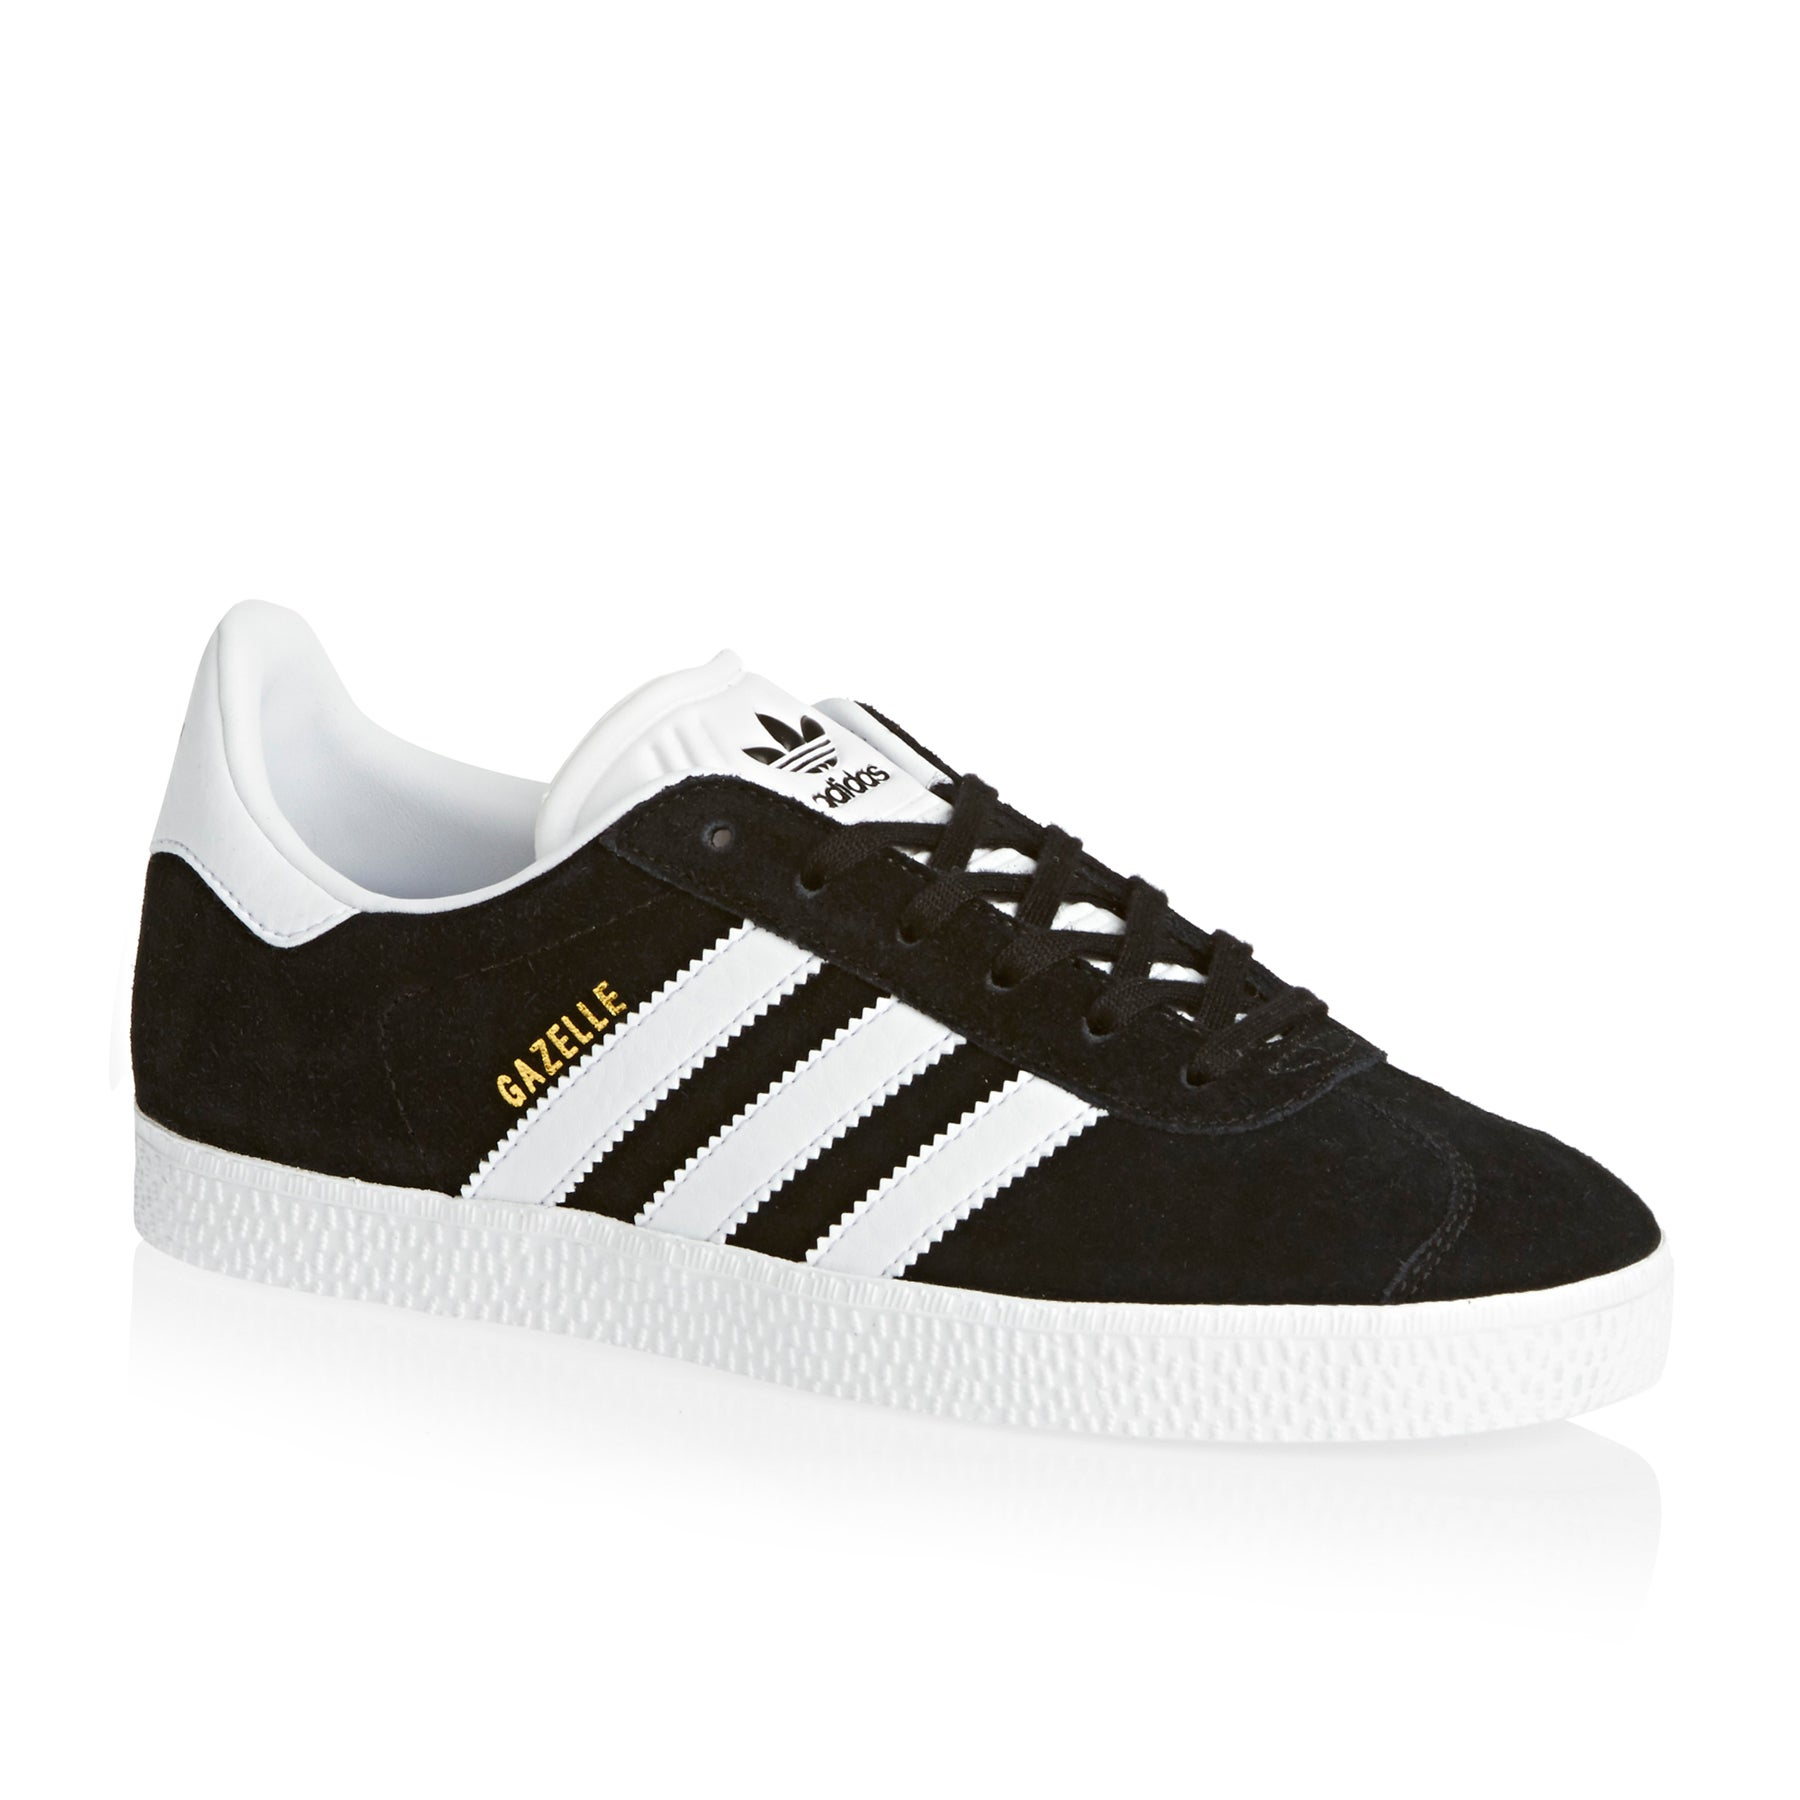 Adidas Originals Gazelle Boys Buty - Black White Gold Metallic